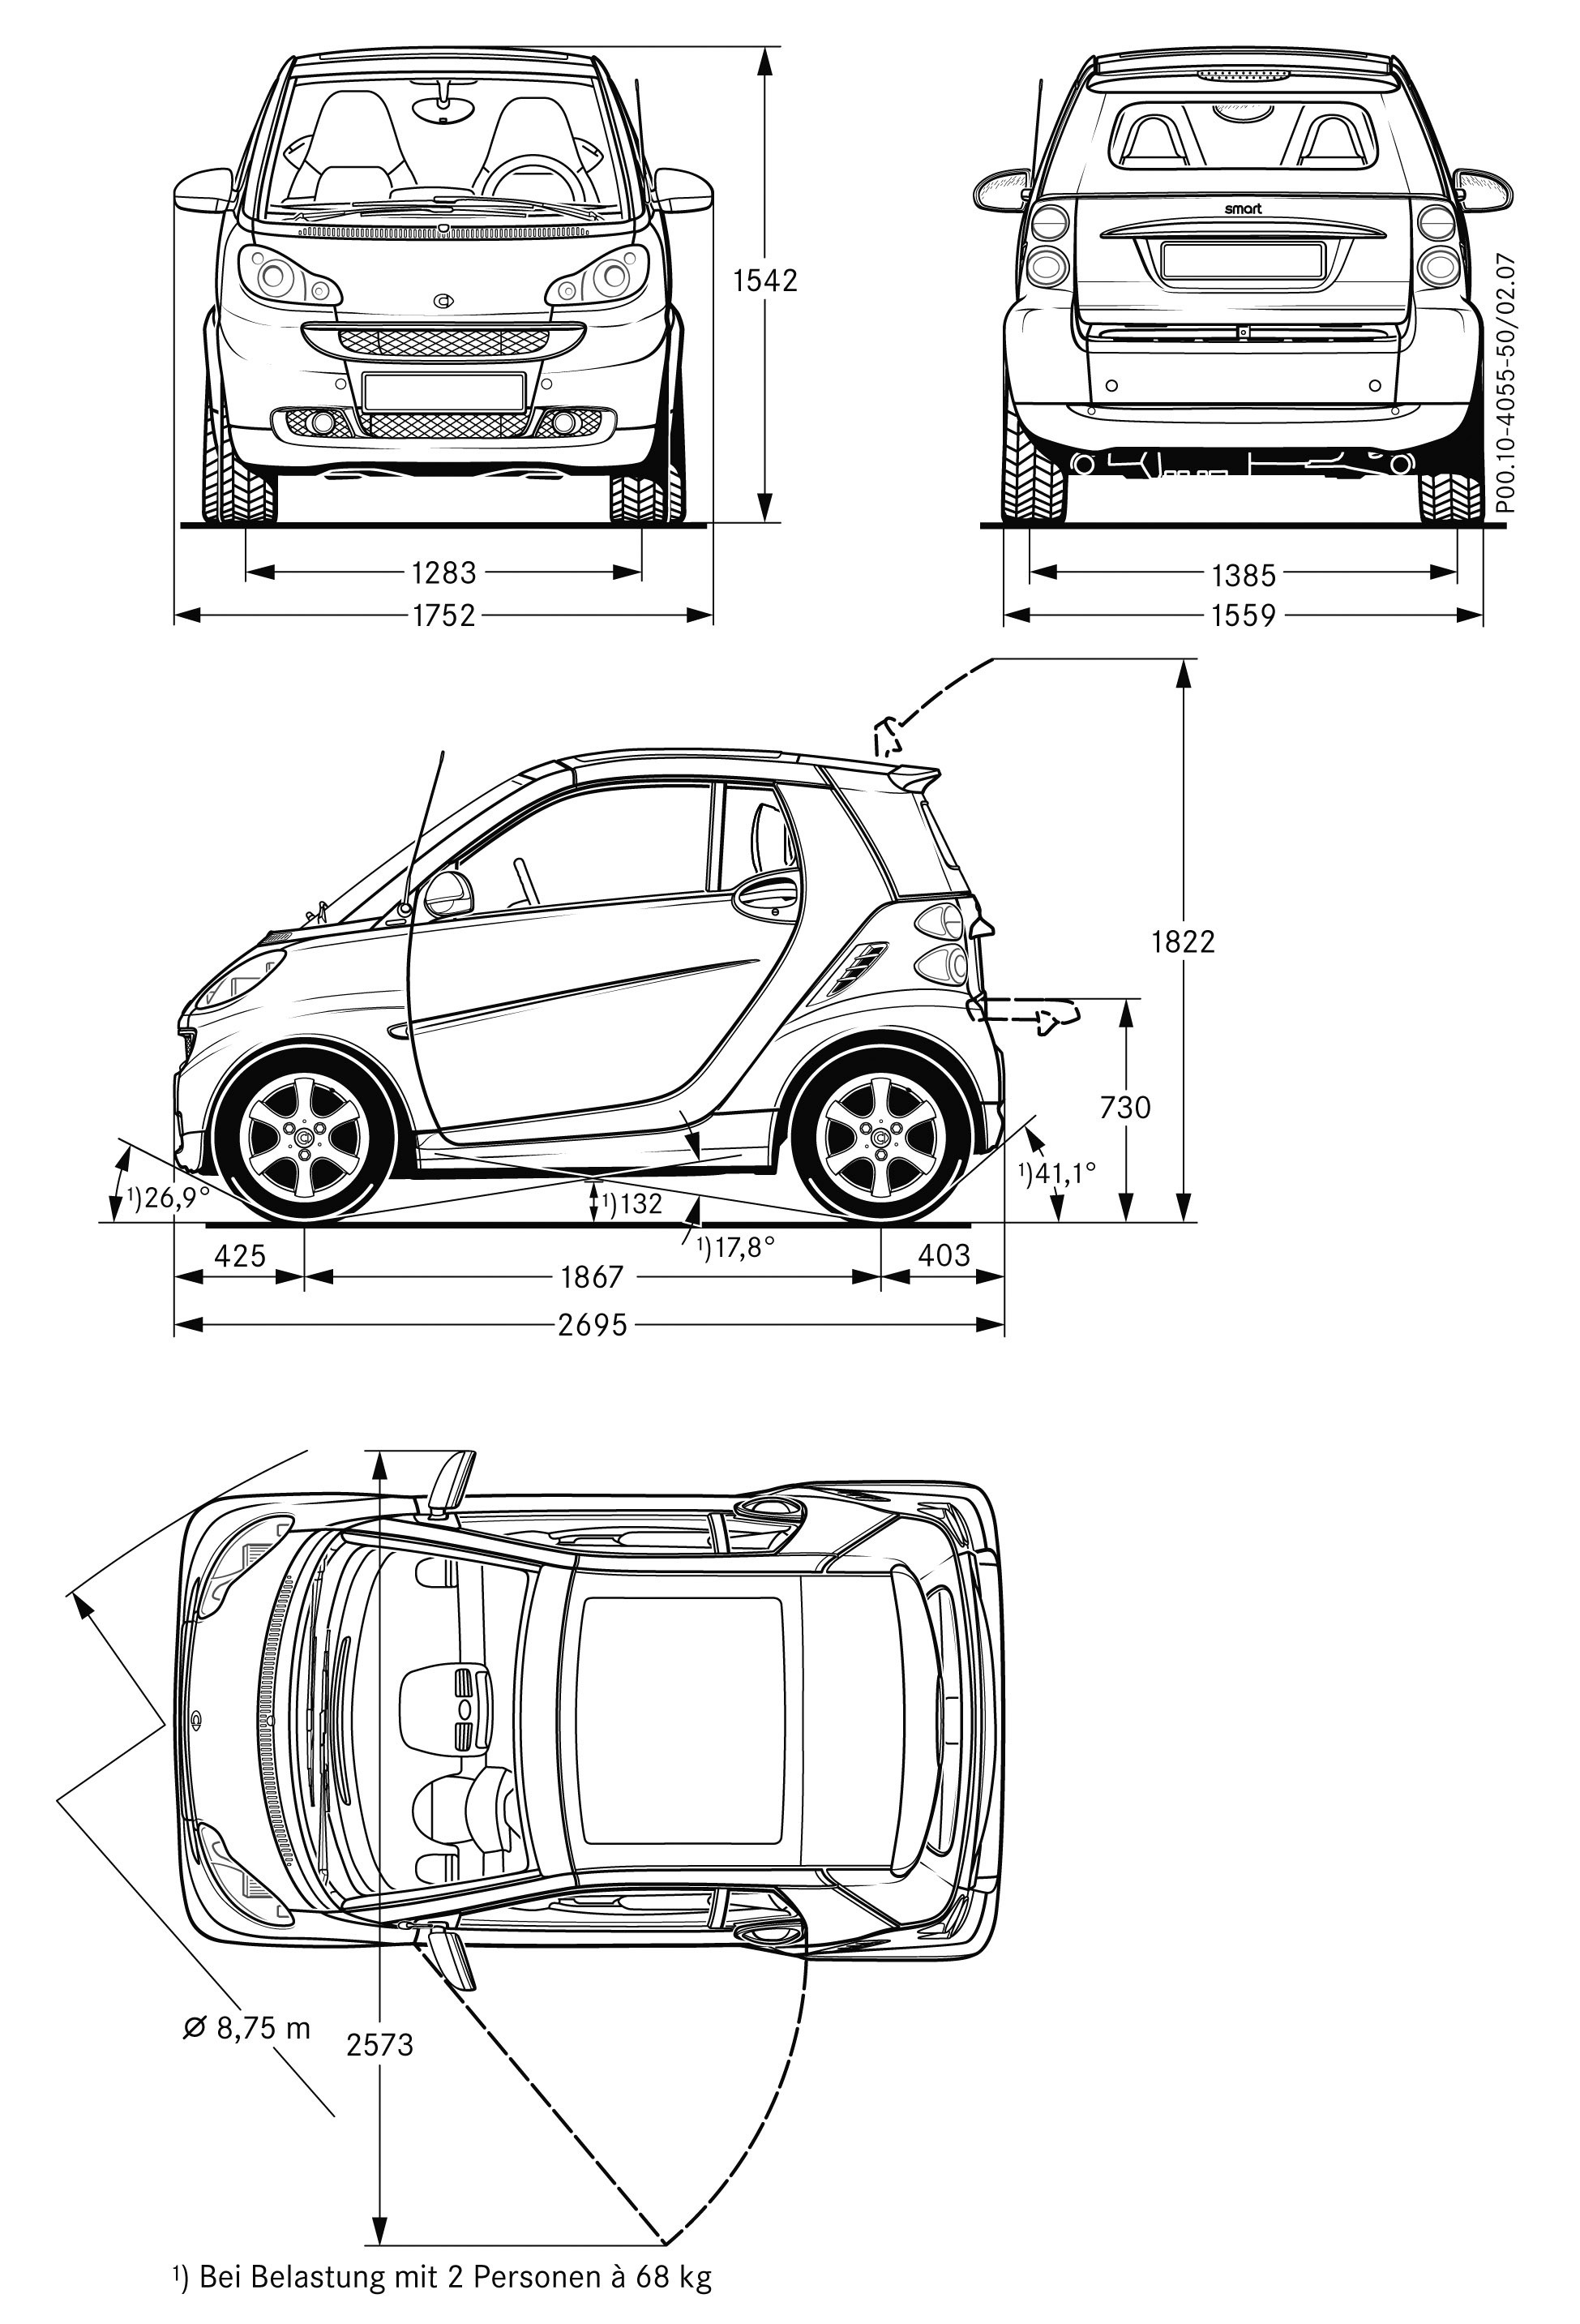 2005 ford mustang diagram